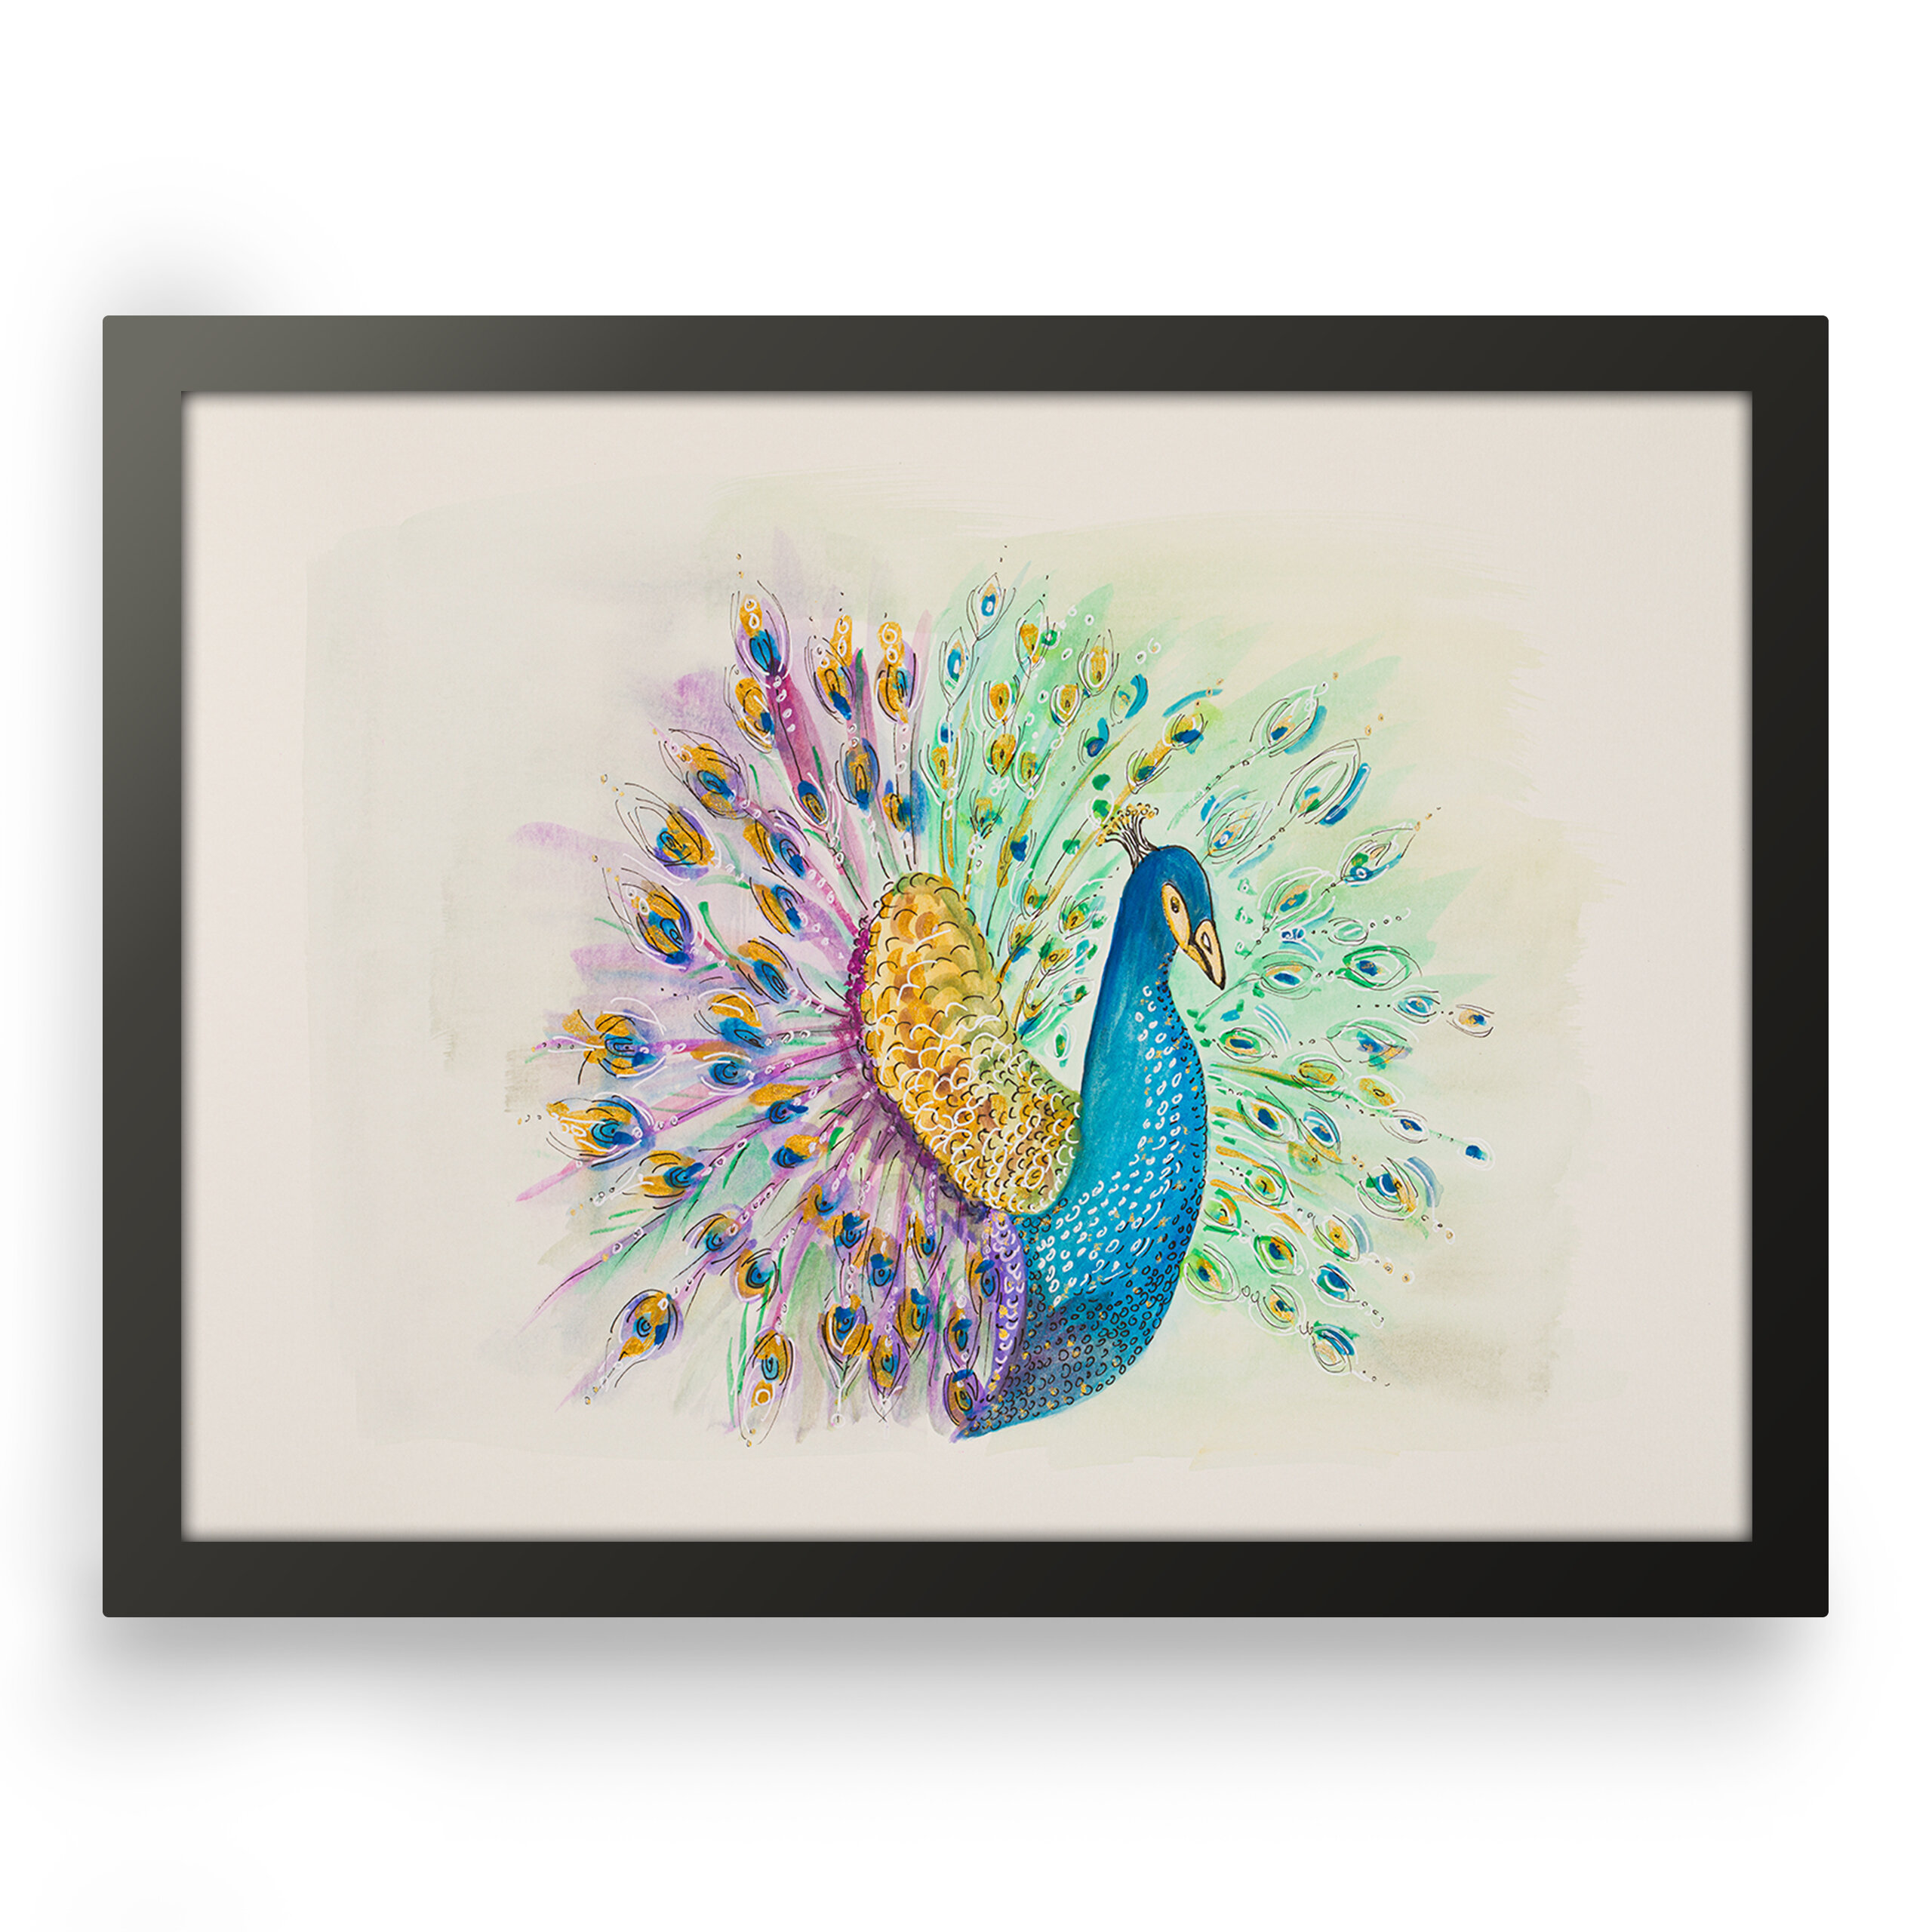 Peacock animal abstract art, Front view